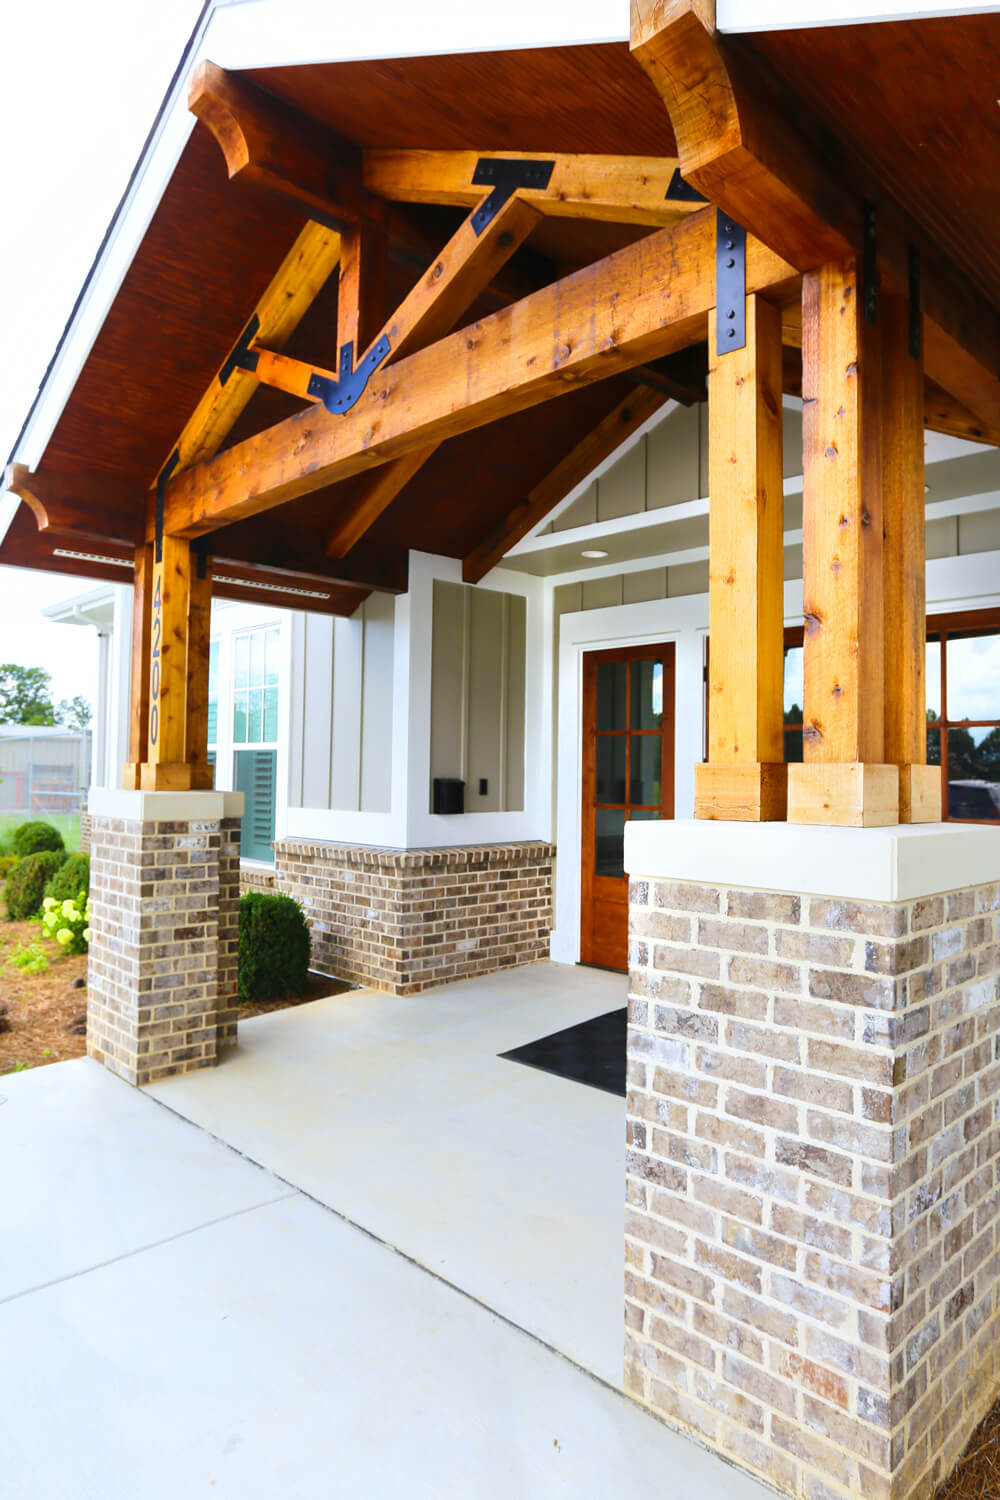 Johnson Office - Covered Entrance - Designed by Foshee Architecture